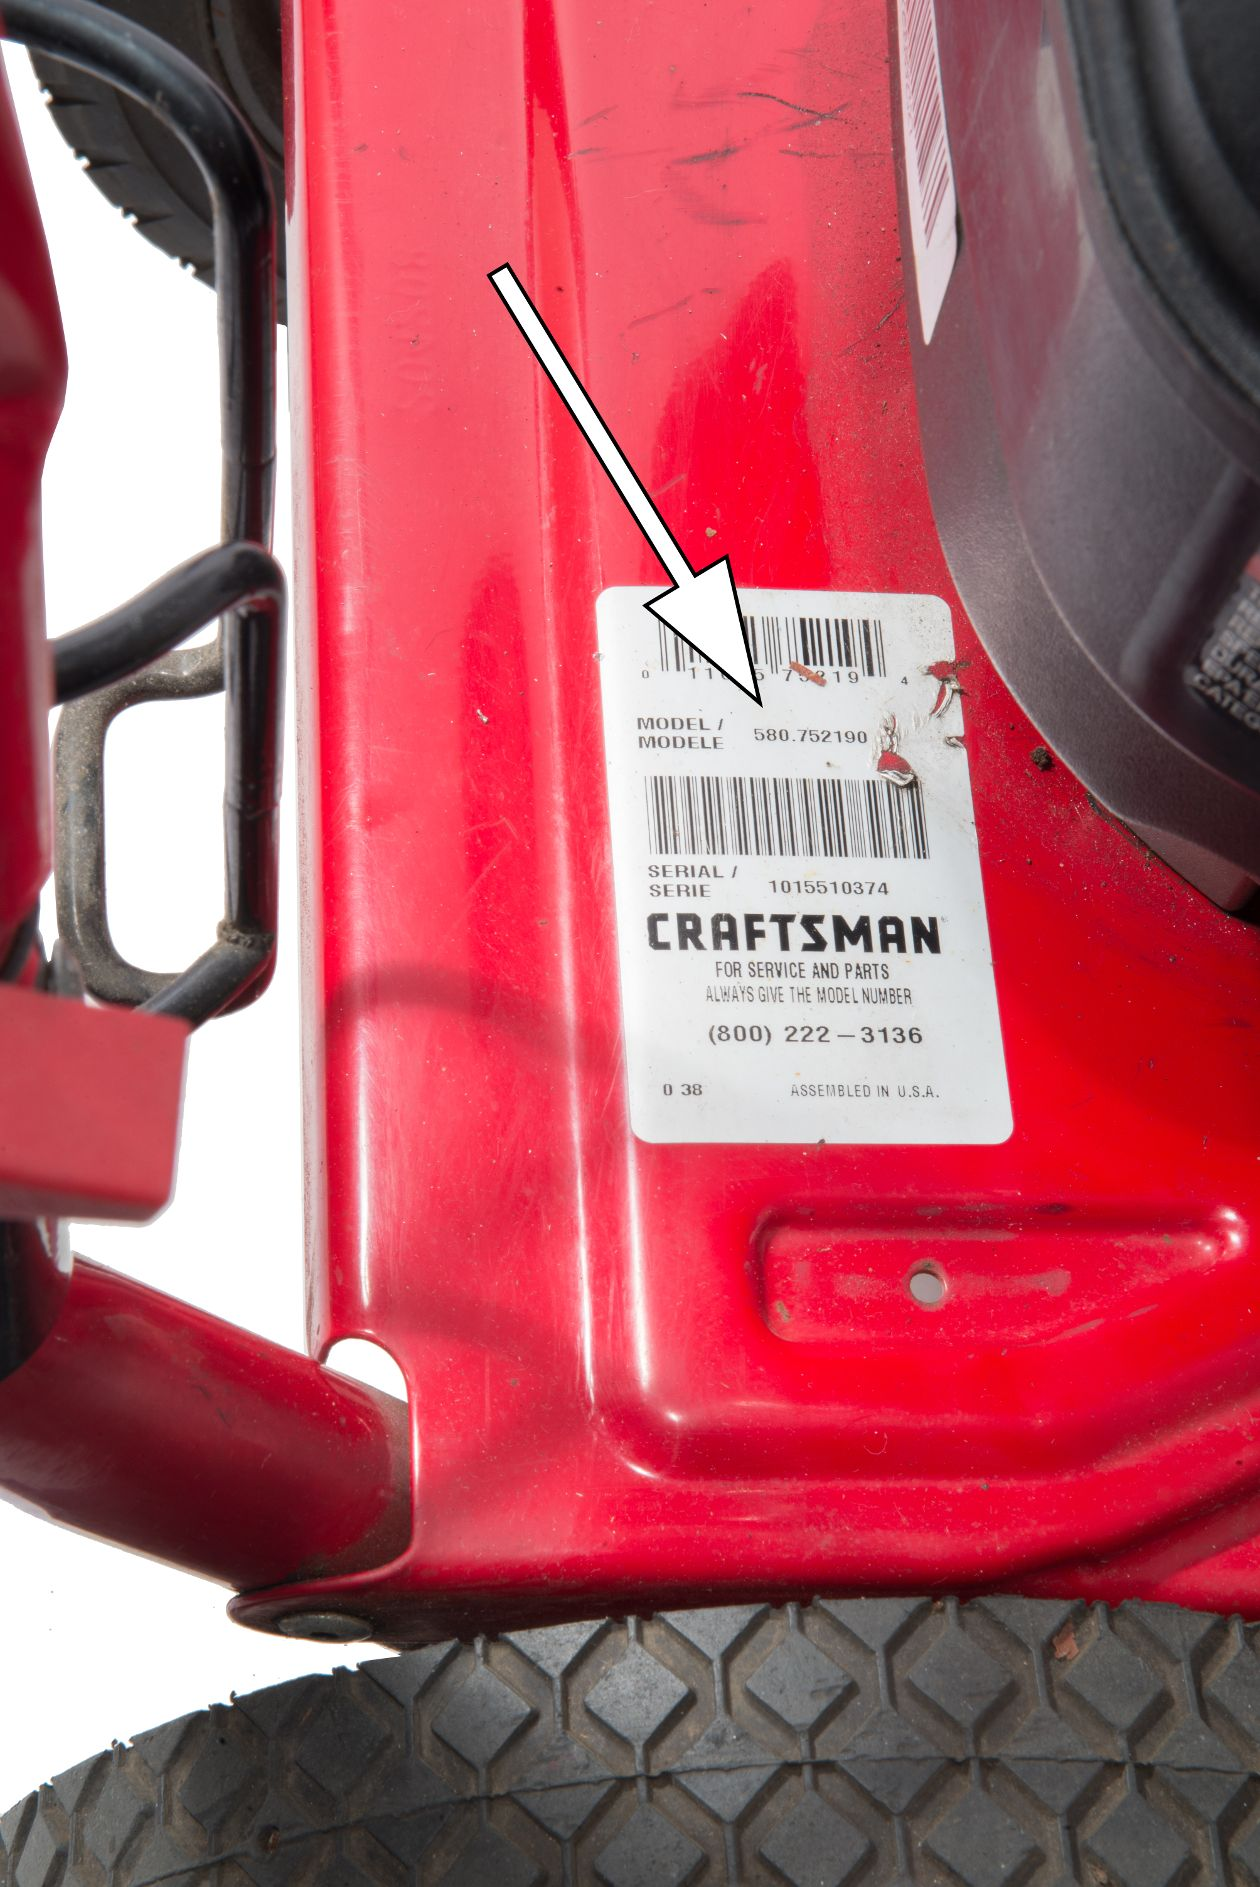 Sears & Craftsman Pressure Washer Replacement Parts and upgrade